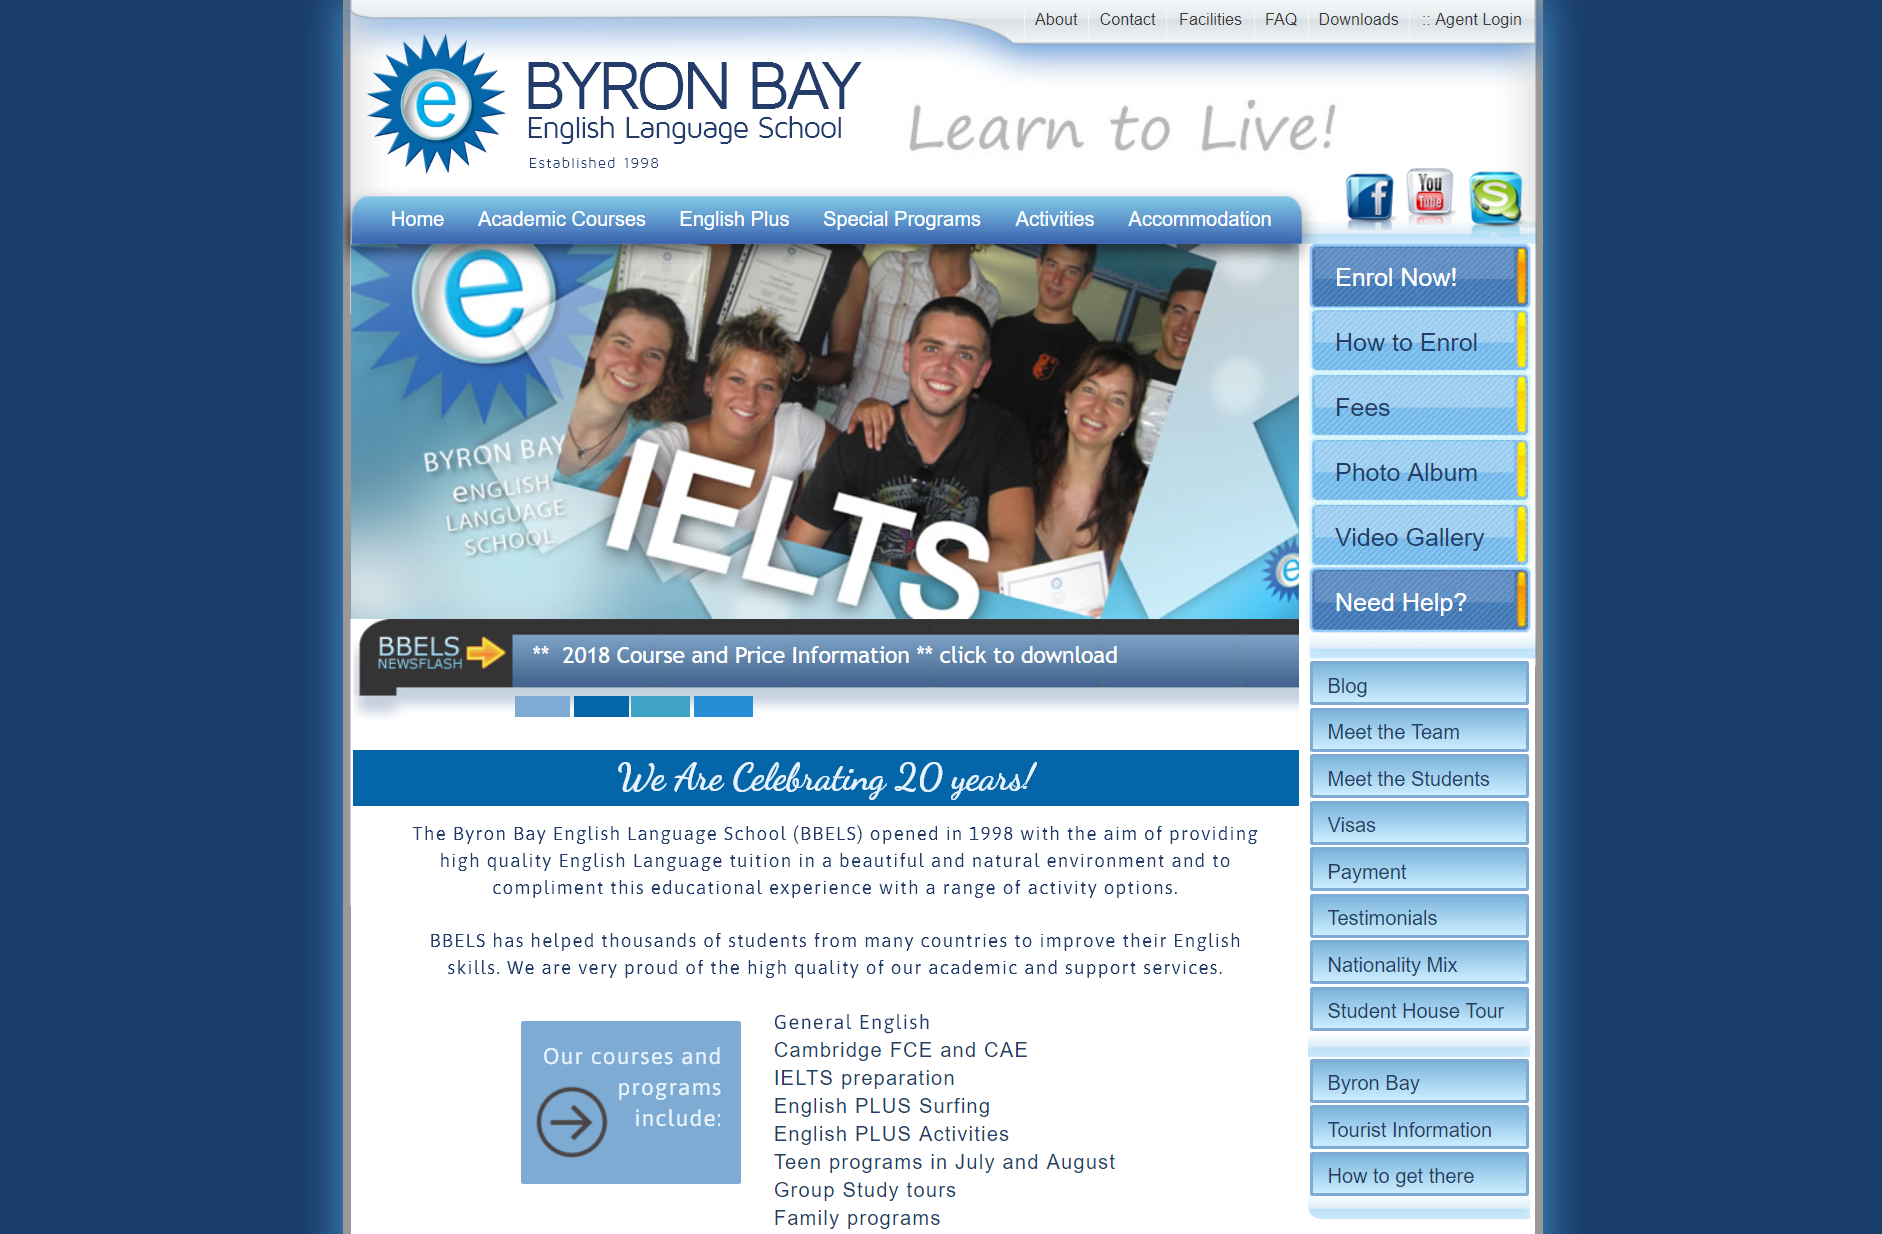 Byron Bay English Language School (BBELS)